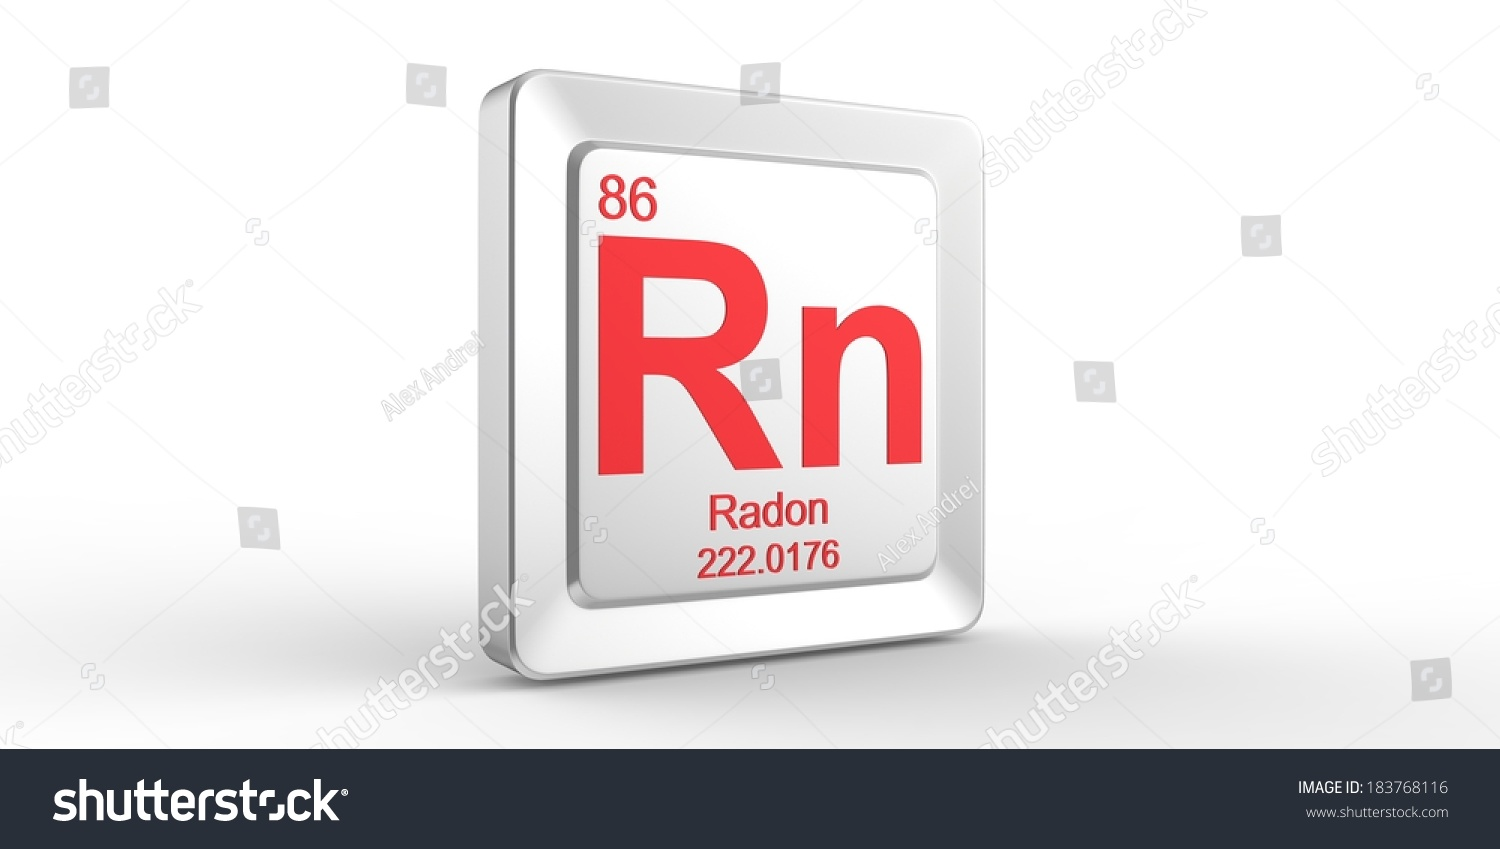 Periodic table radon gallery periodic table images rn symbol 86 material radon chemical stock illustration 183768116 rn symbol 86 material for radon chemical gamestrikefo Image collections